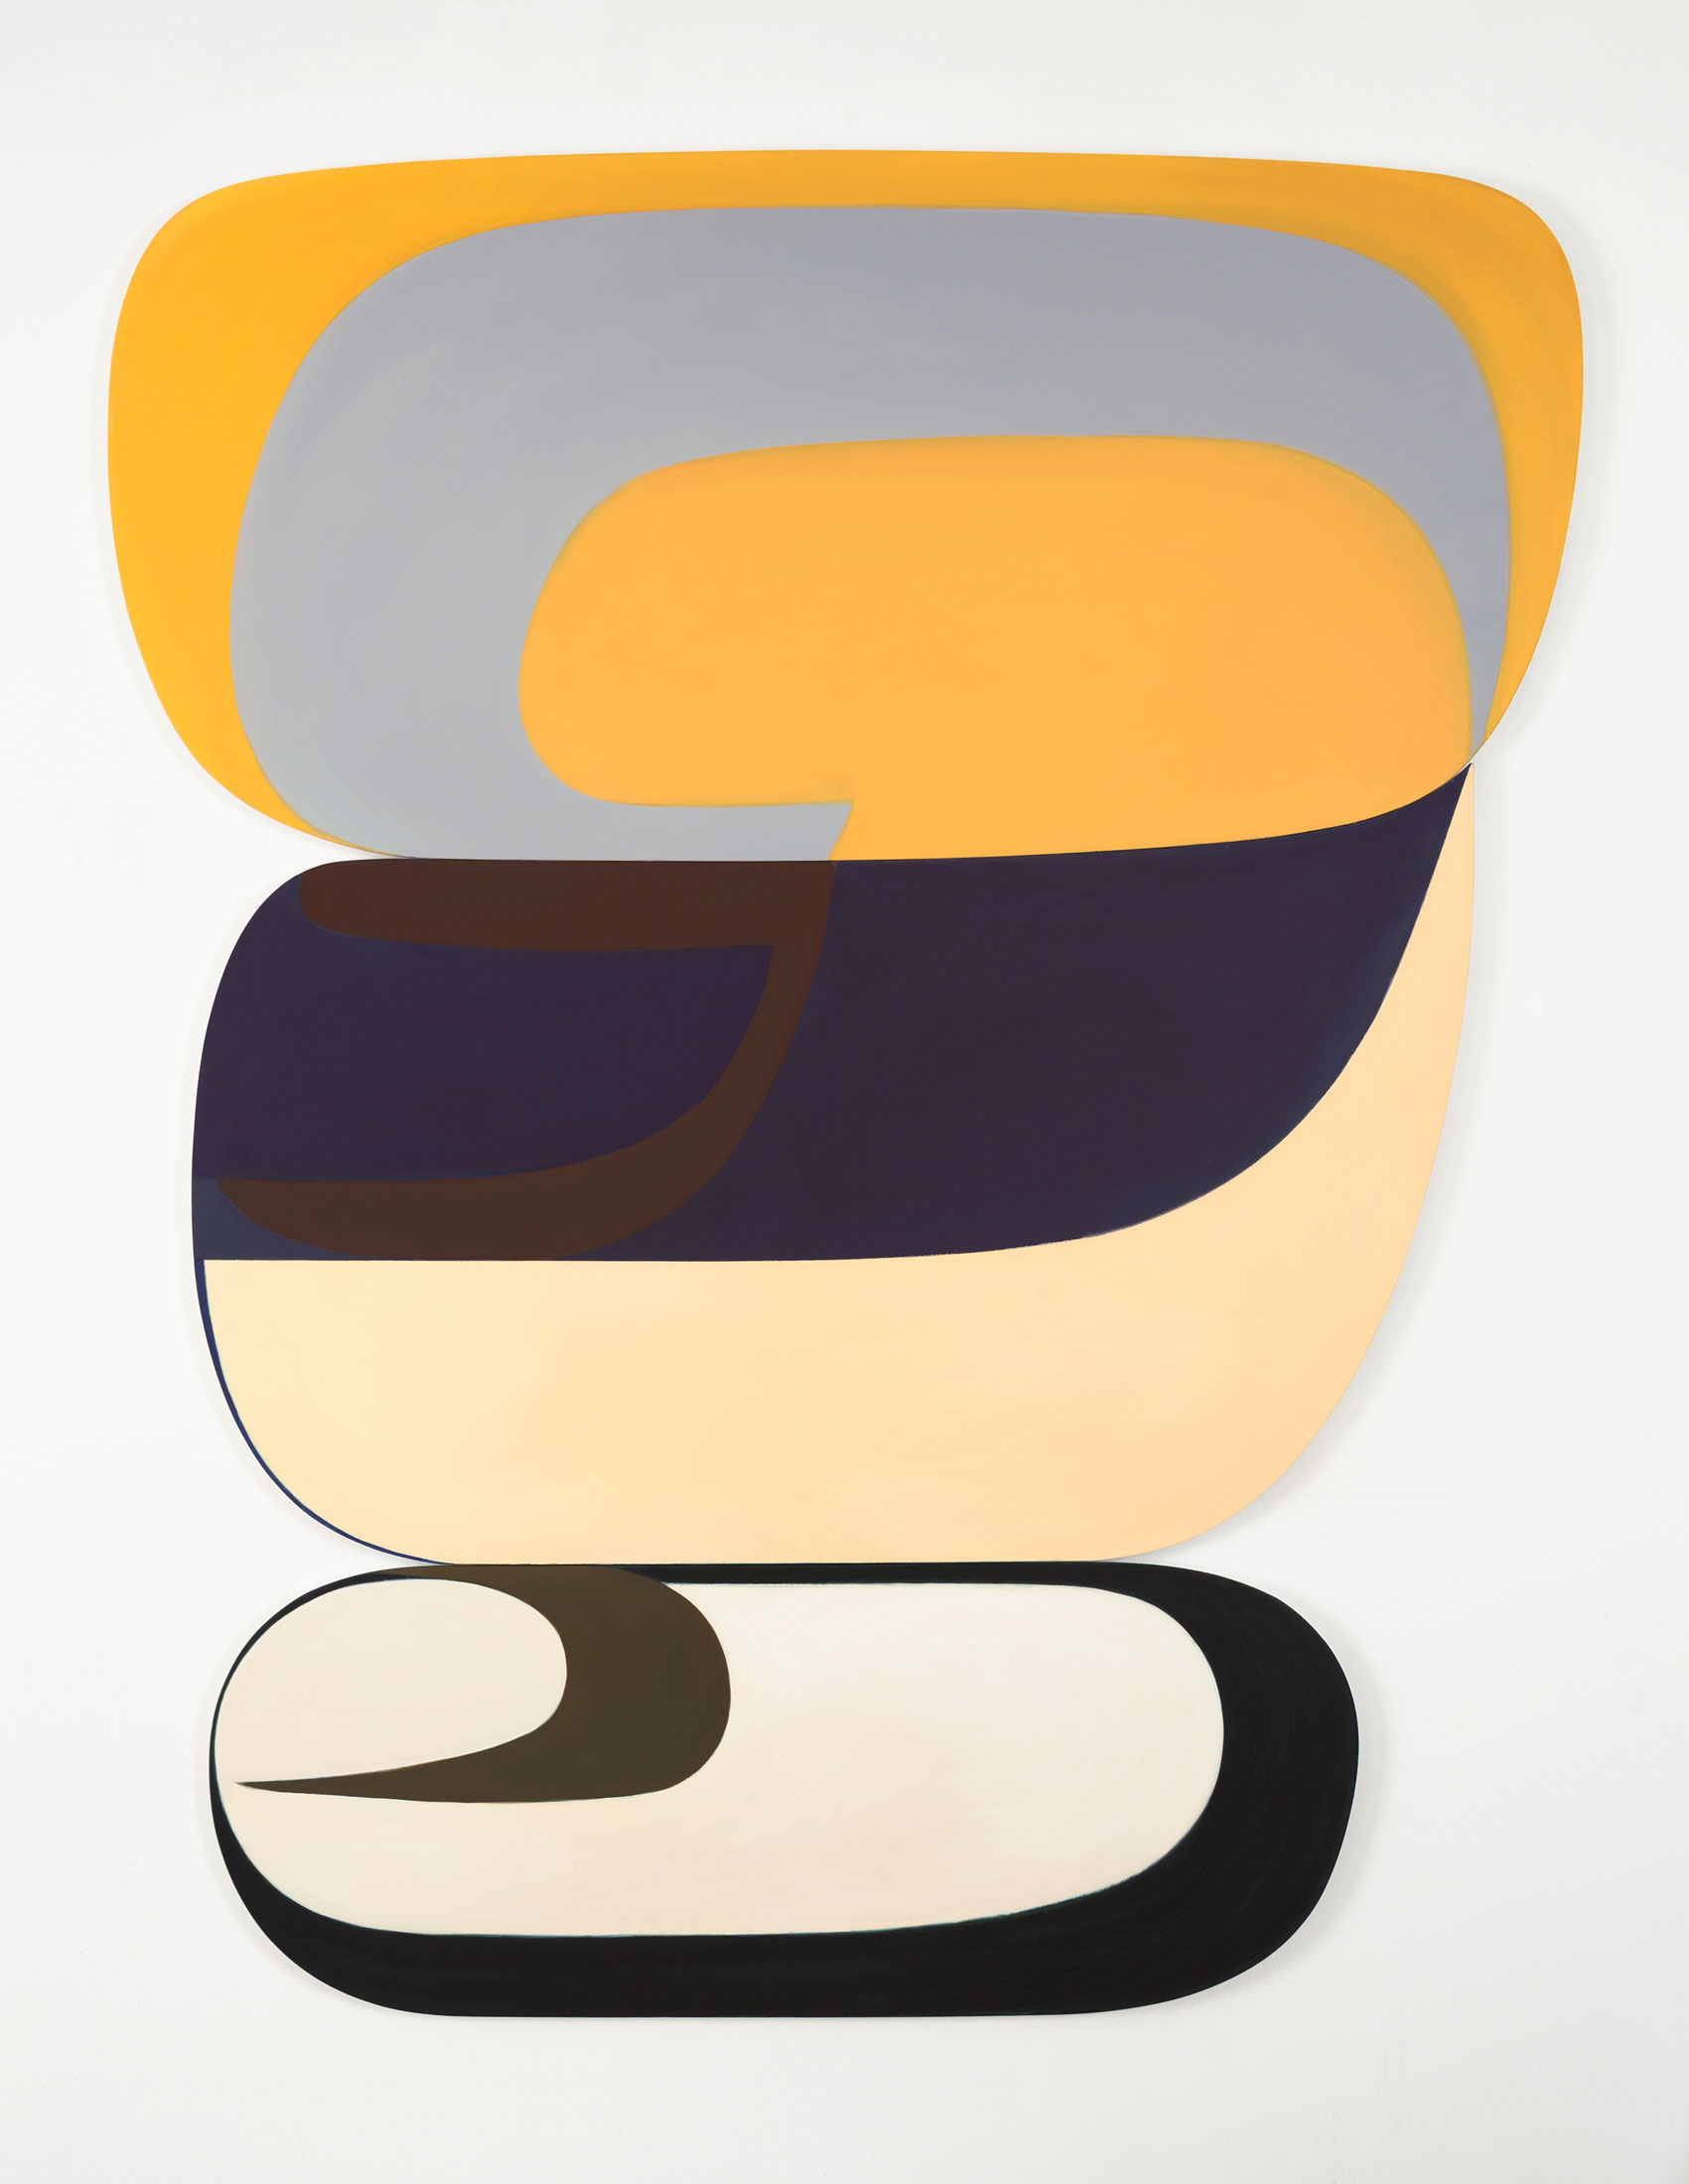 Joanna Pousette-Dart 3 Part Variation #5, 2011-2013 Acrylic and canvas on shaped wooden panels 94 x 73 inches (238.8 x 185.4 cm) © Joanna Pousette-Dart; Courtesy of the artist and Luhring Augustine, New York